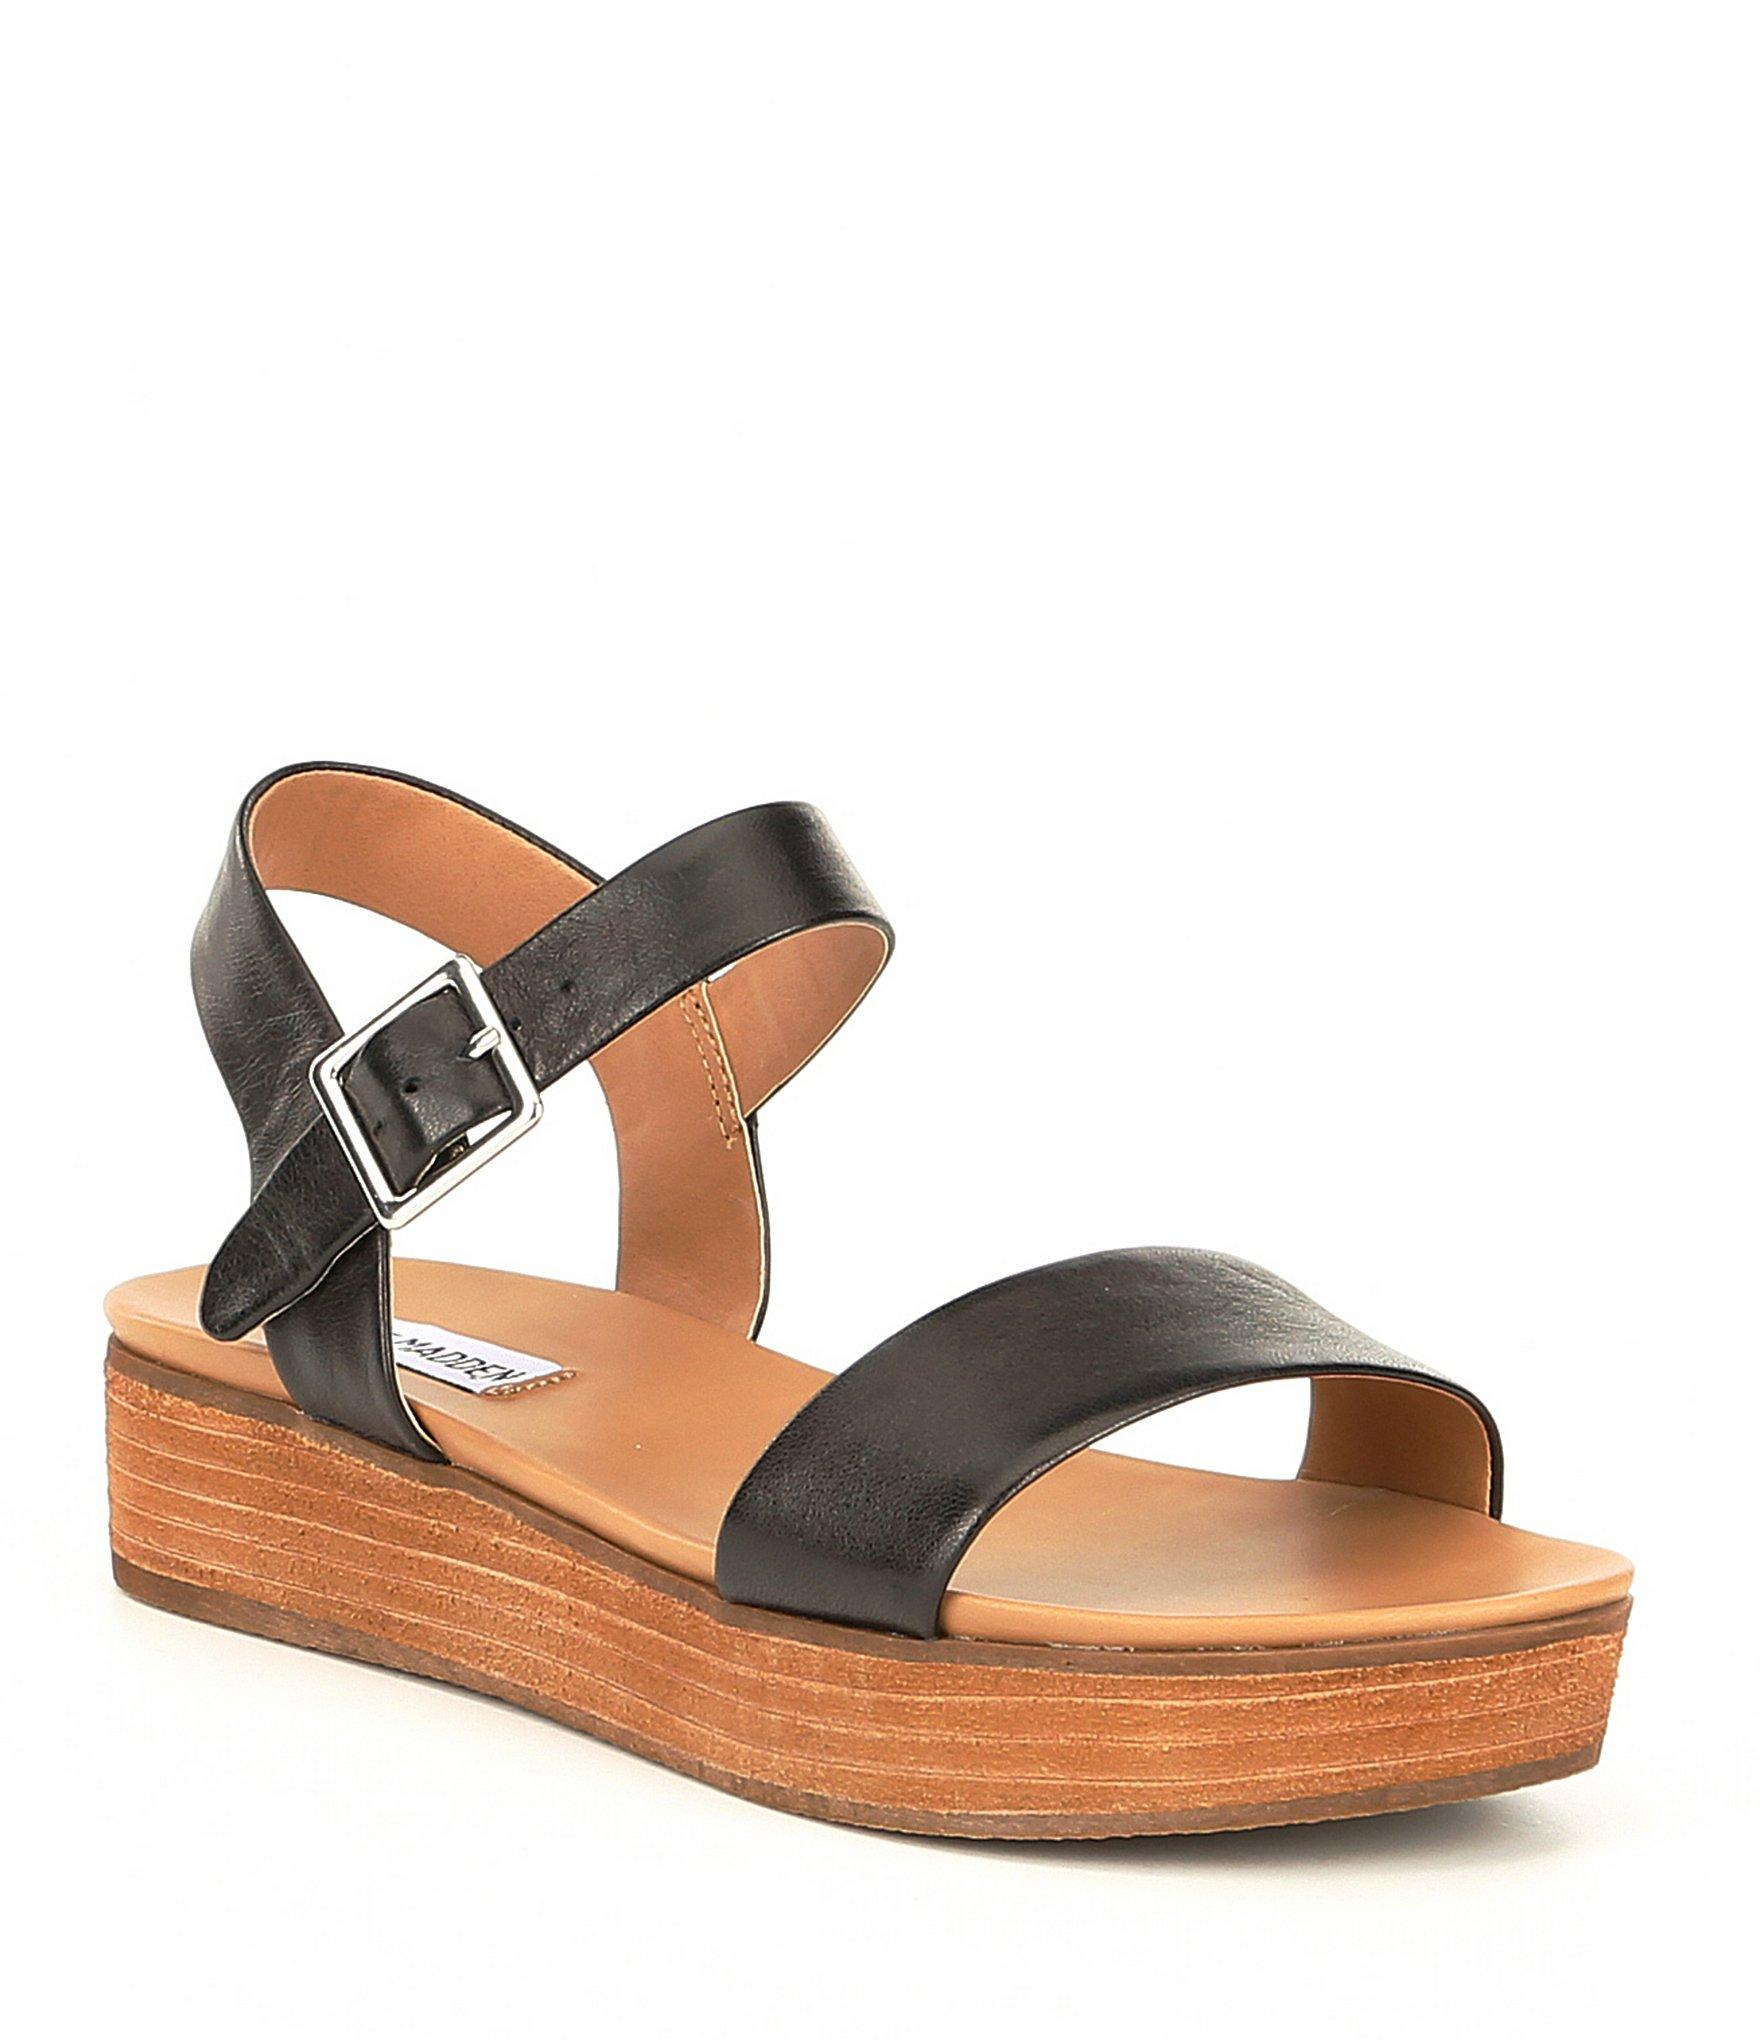 952a82cd77de Lyst - Steve Madden Aida Leather Wood Flatform Sandals in Brown